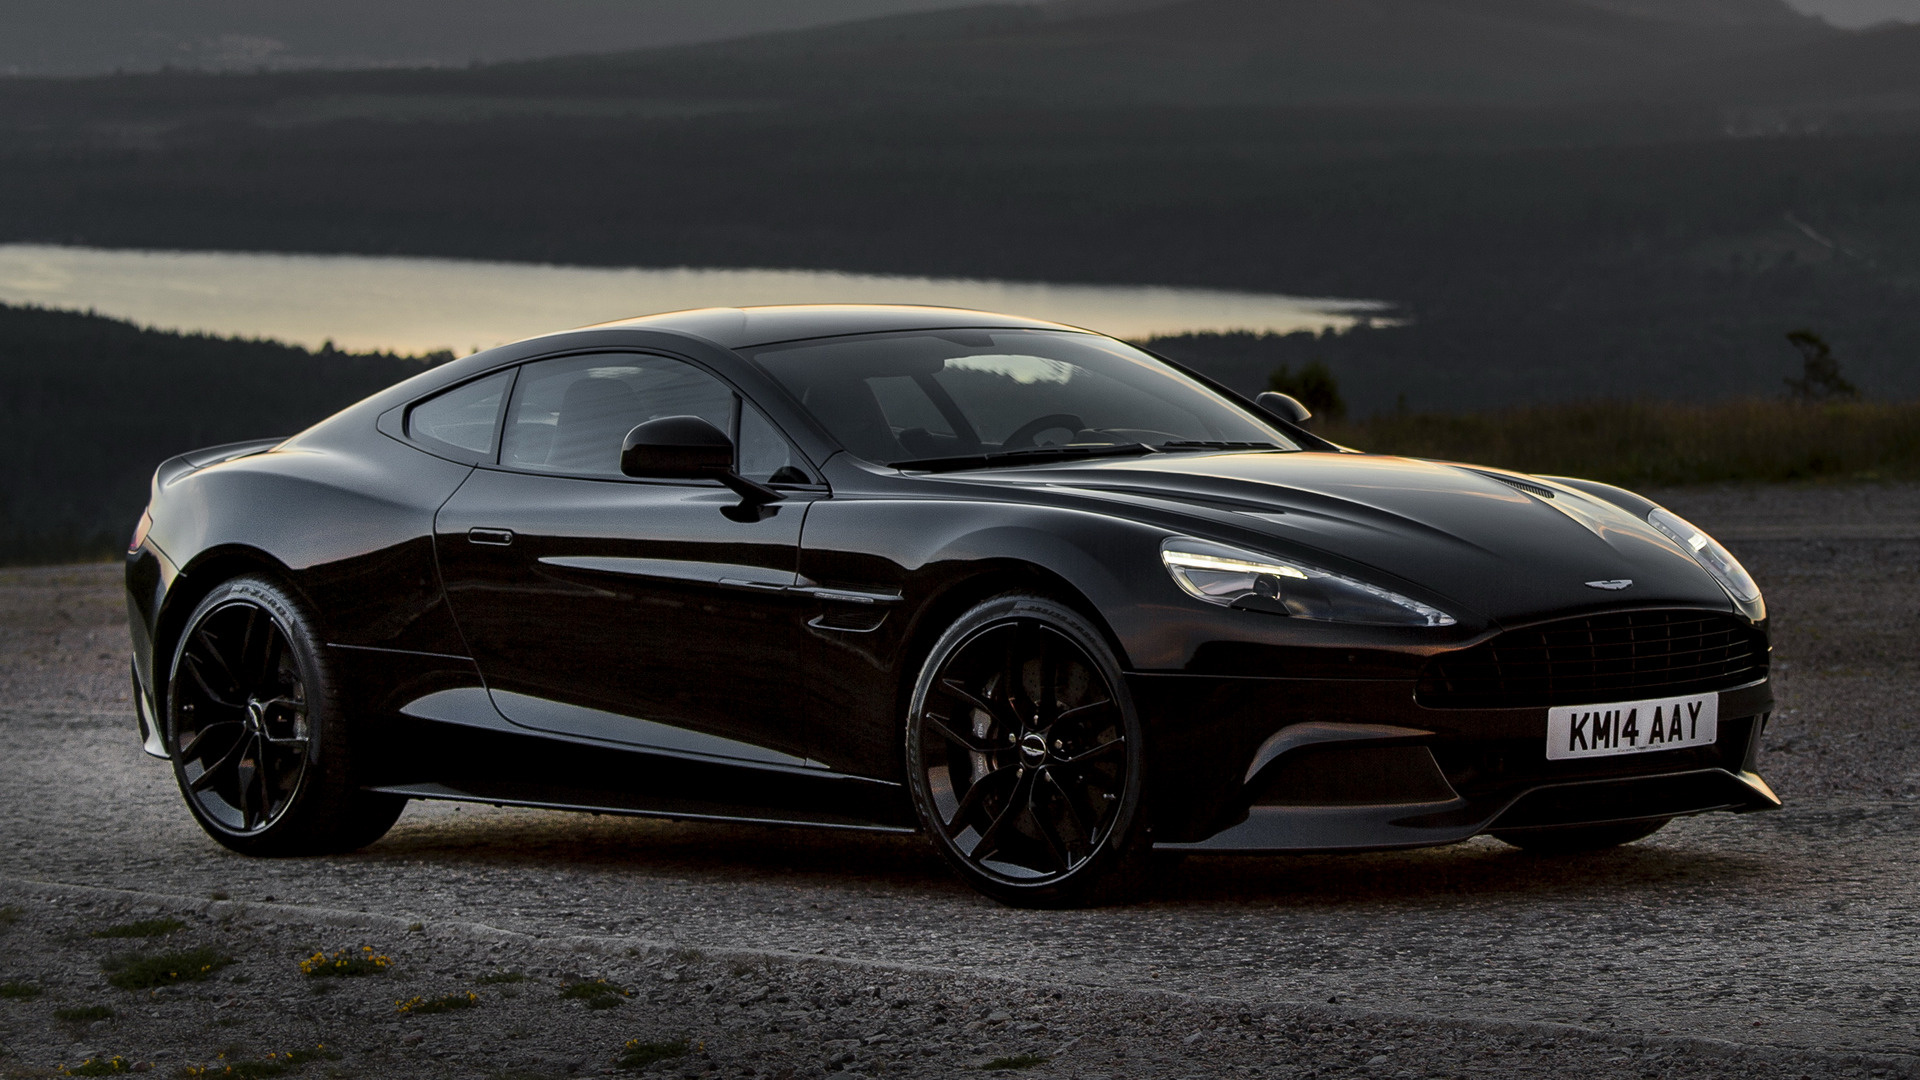 2014 aston martin vanquish carbon black - wallpapers and hd images